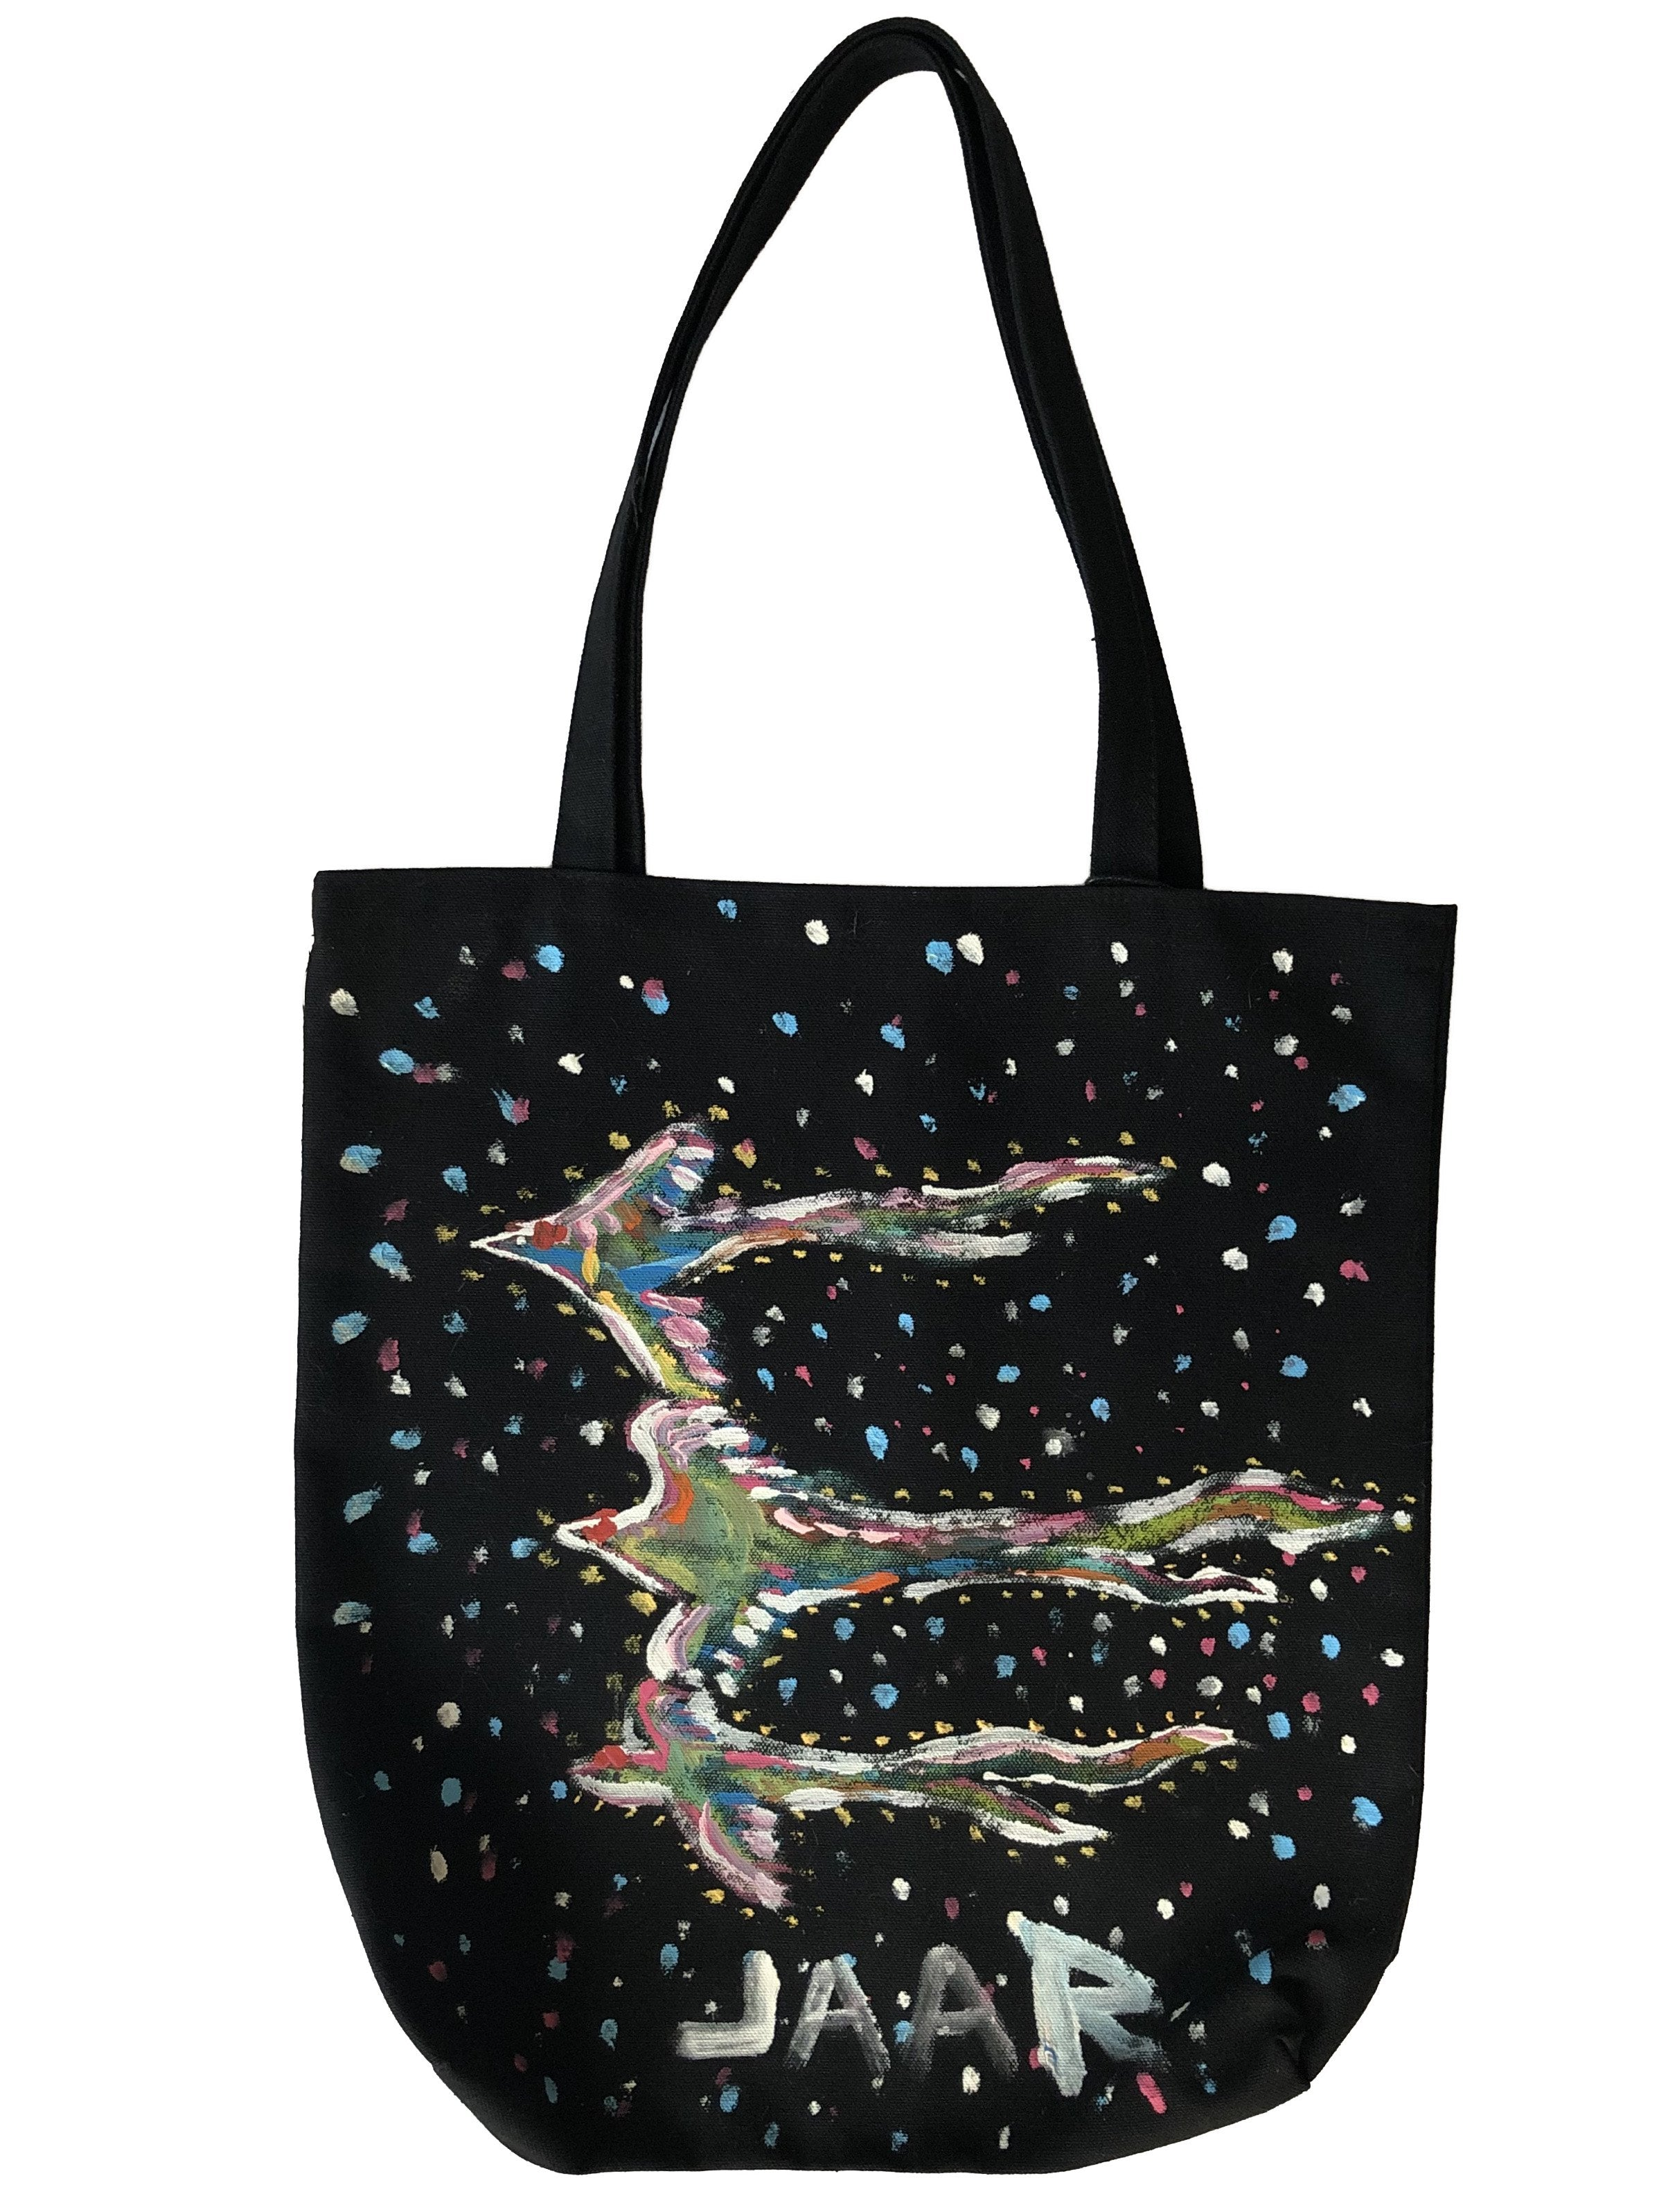 Birds tote bag - sohogalleries